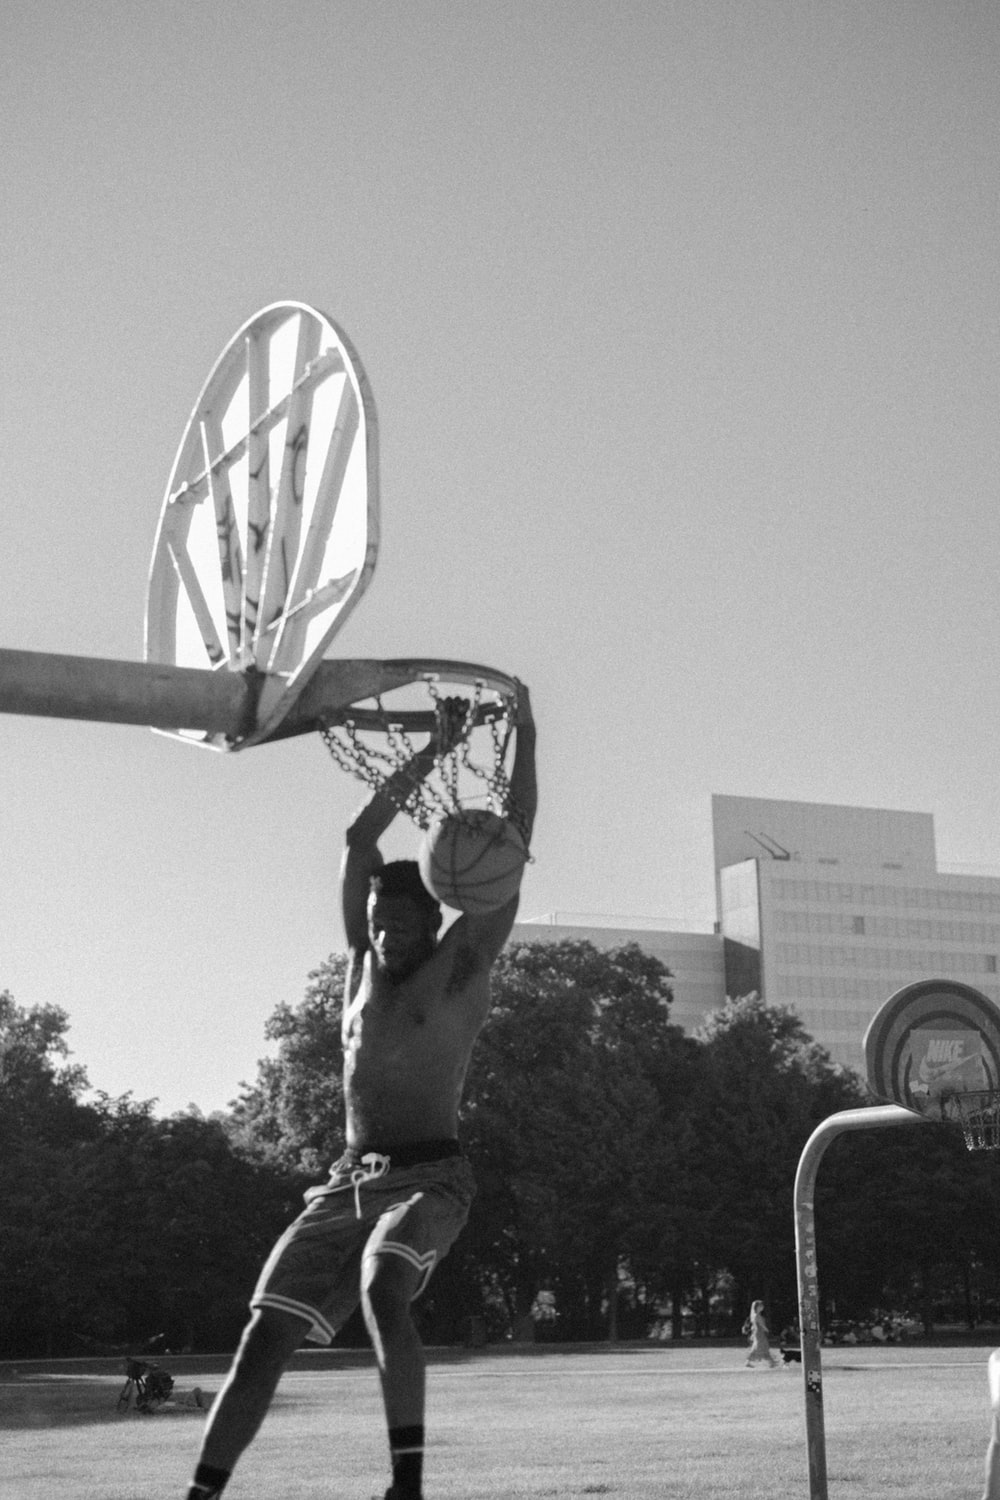 grayscale photography of man playing basketball